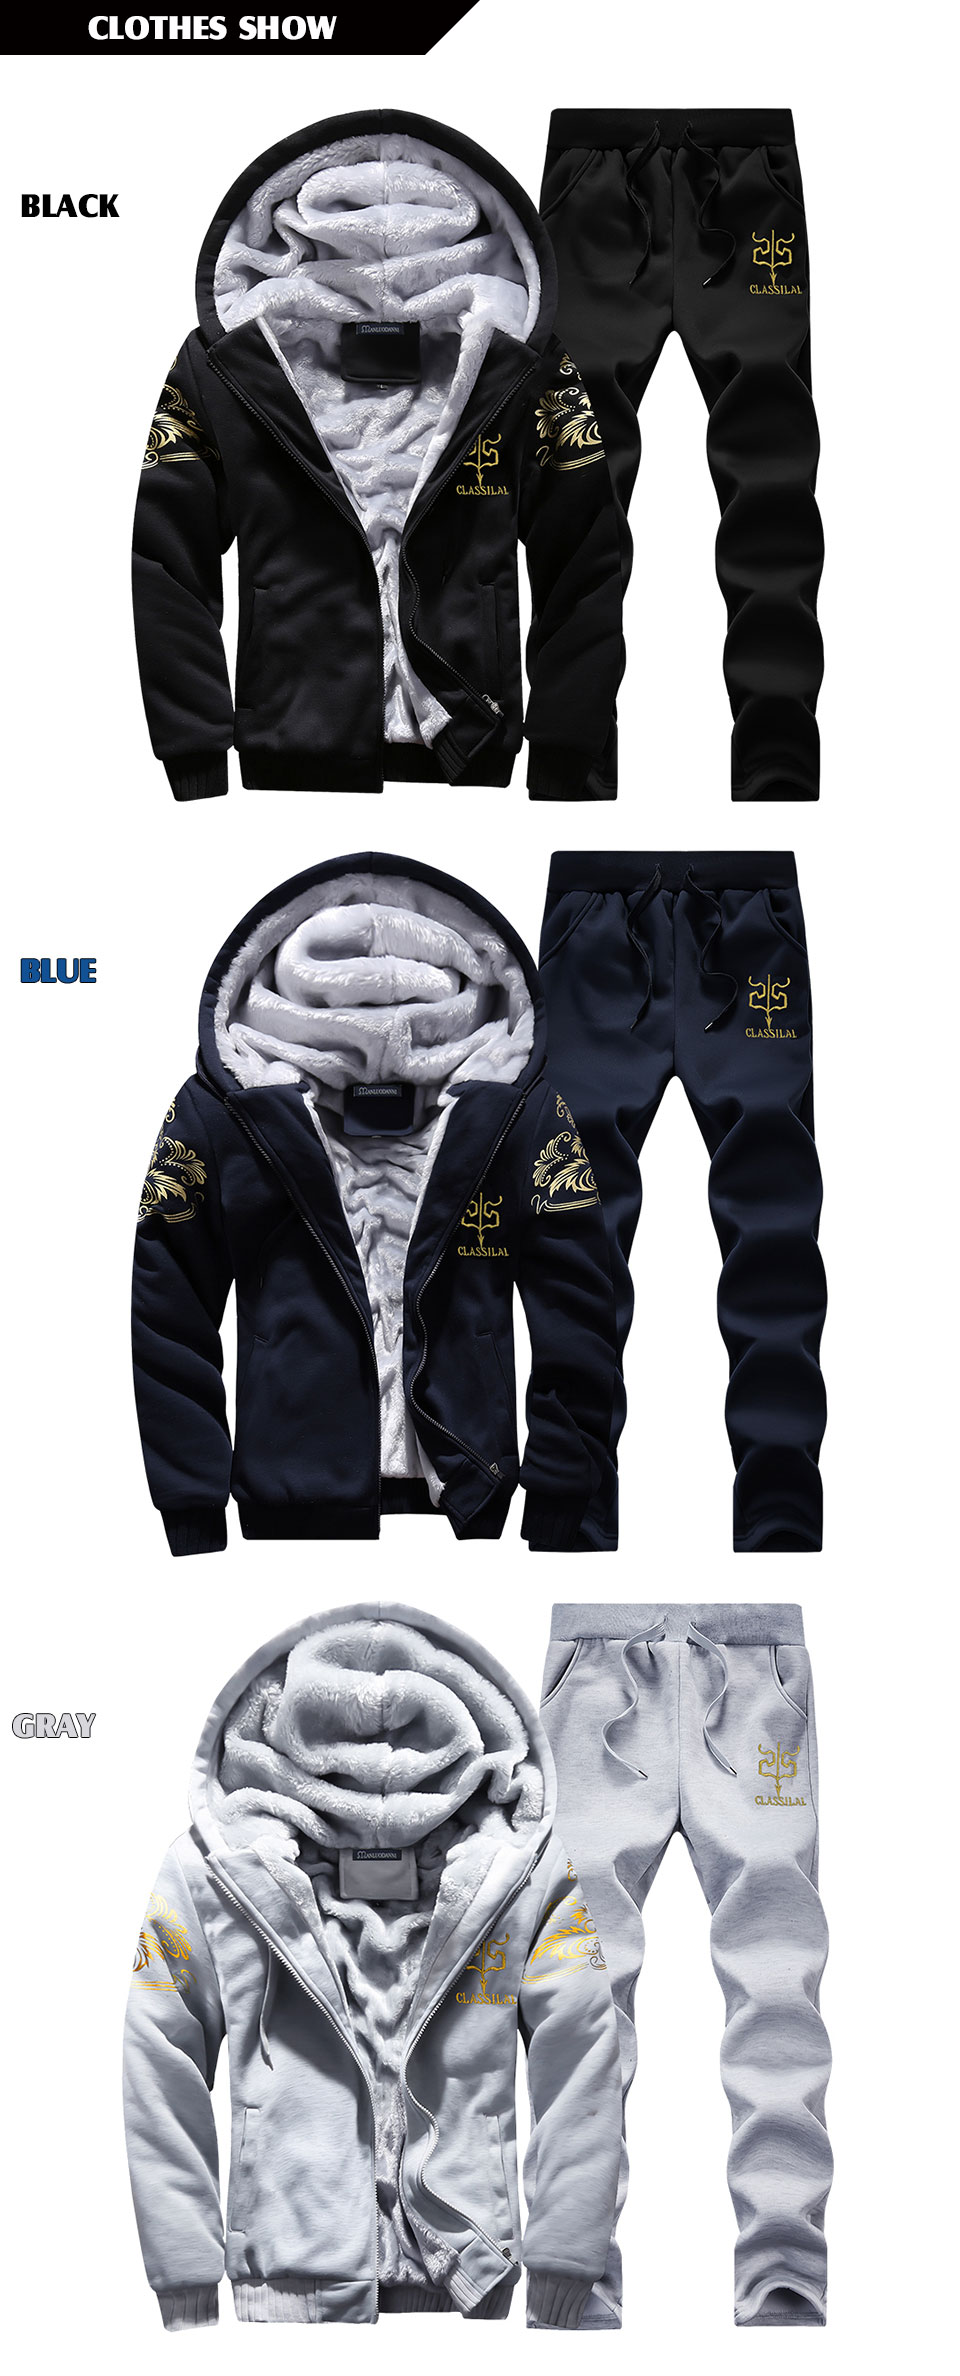 Men's Sportswear Casual Winter Warm Hooded Tracksuit Men Two Piece Sets Suit with Hood 2PC Fleece Thick Jacket + Pants Male 4XL 5